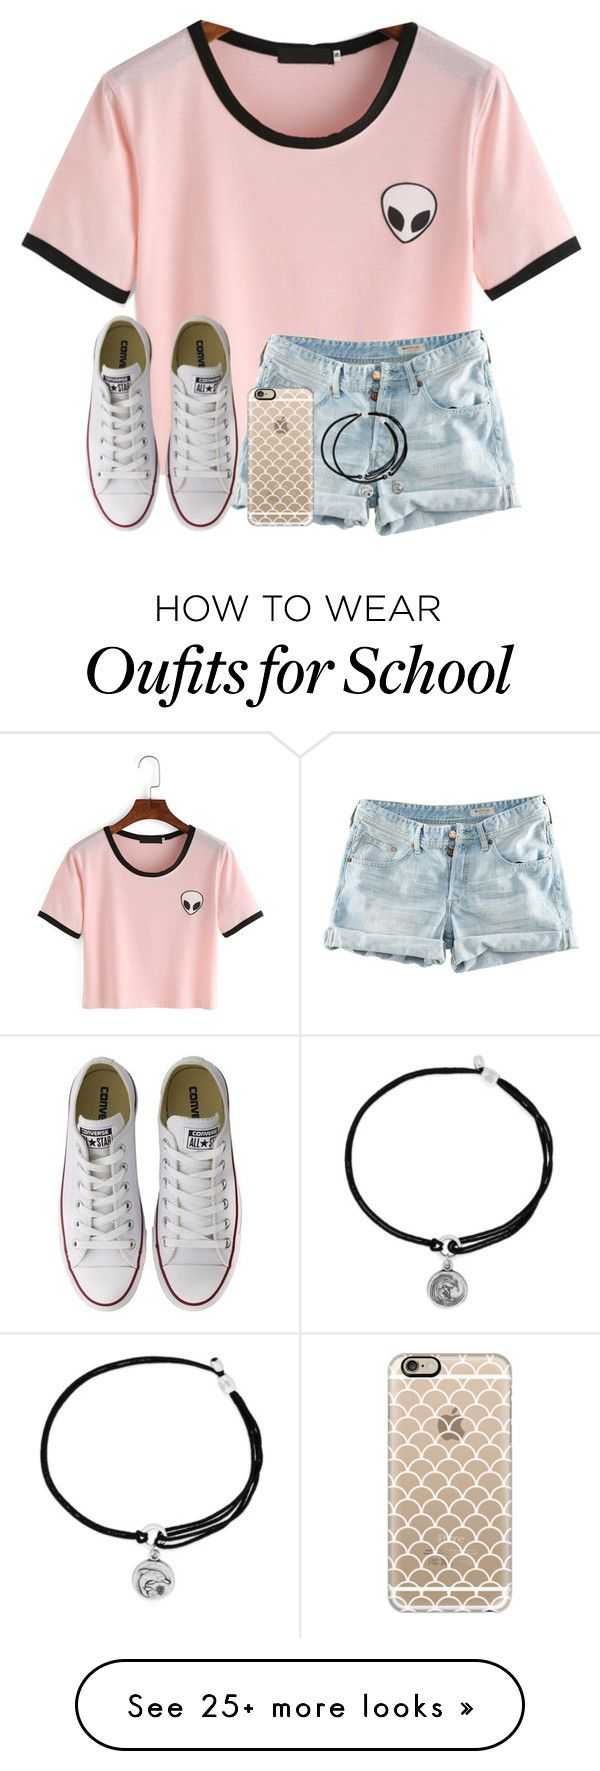 """Let's Hope I'm Not Late To School Today!"" by twaayy on Polyvore featuring H&M, Converse, Casetify and Alex and Ani"